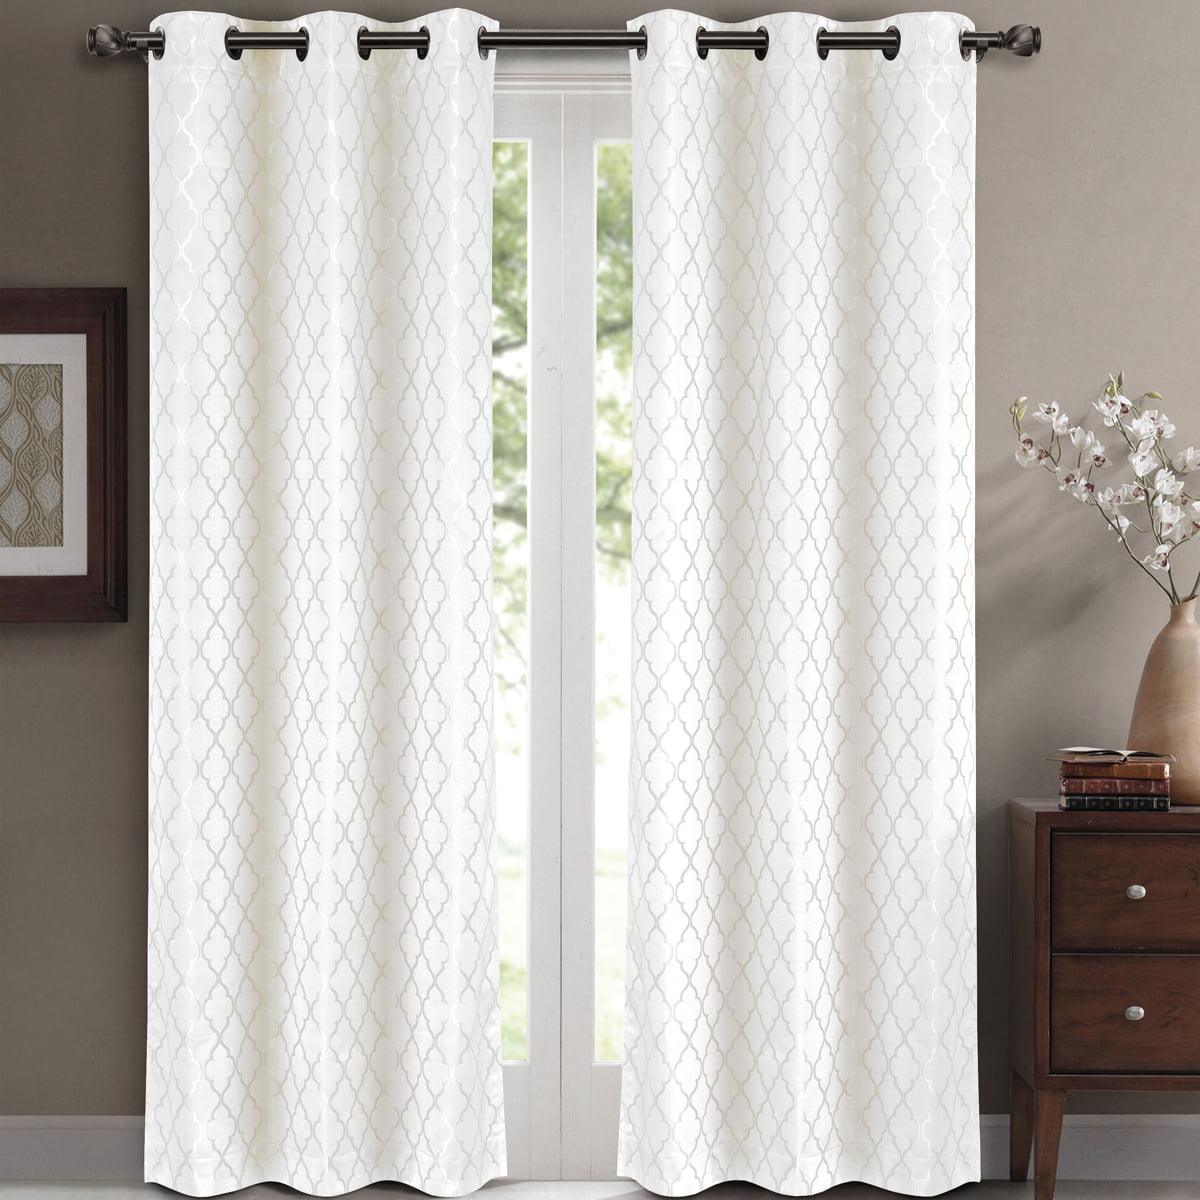 home boch com stripe blackout curtains drapes curtain dp black half kitchen price amazon awning white